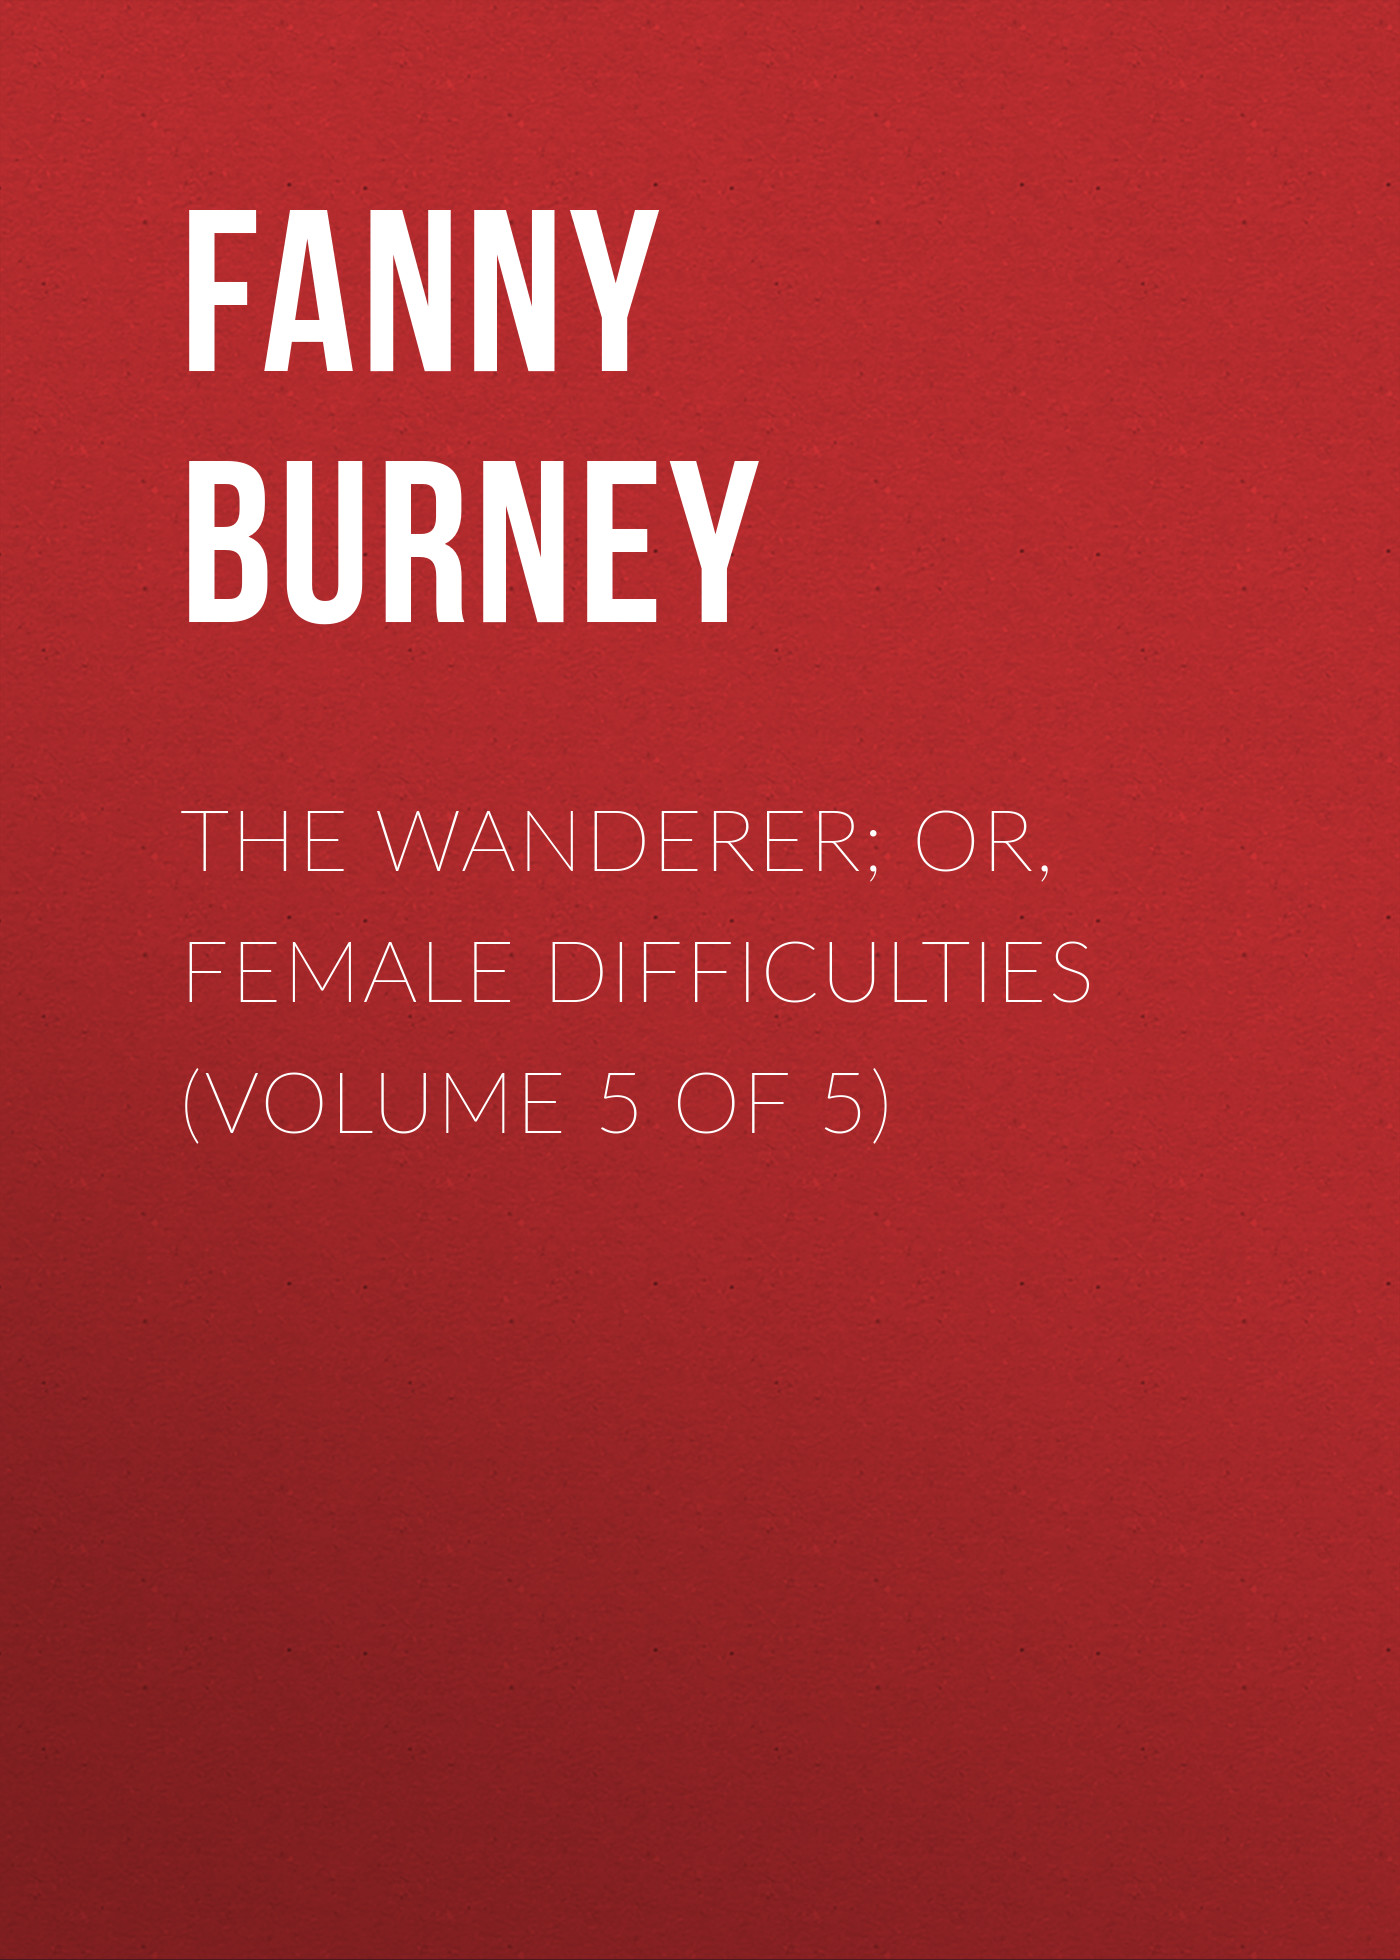 Burney Fanny The Wanderer; or, Female Difficulties (Volume 5 of 5) burney fanny the wanderer or female difficulties volume 5 of 5